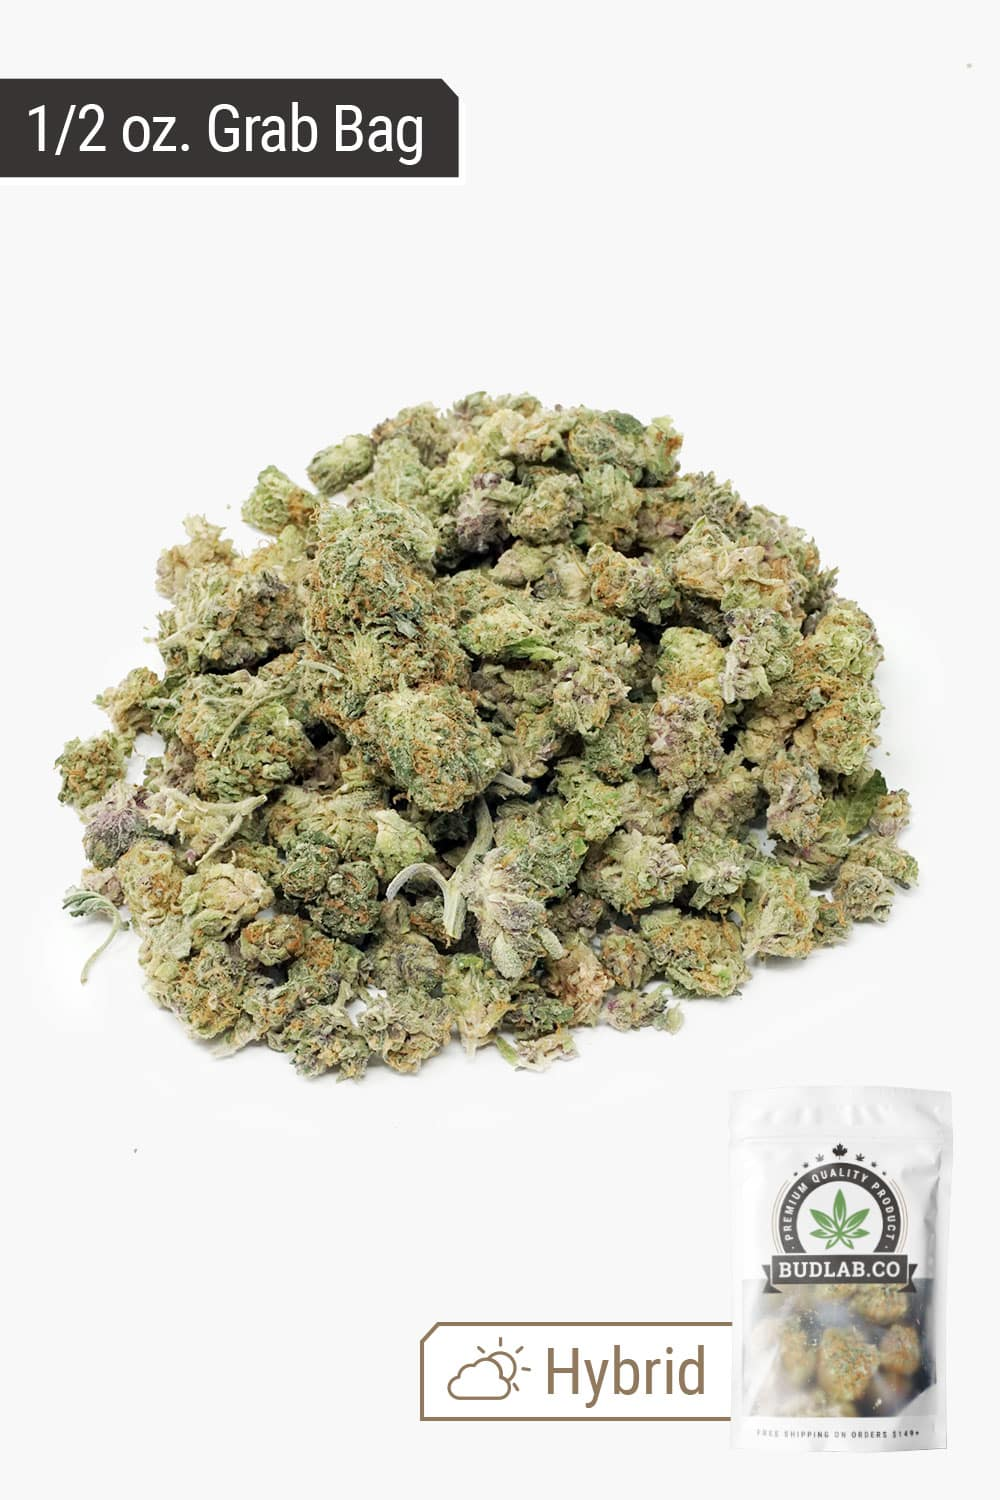 Four Star General AAA Small Buds Grab Bag 2